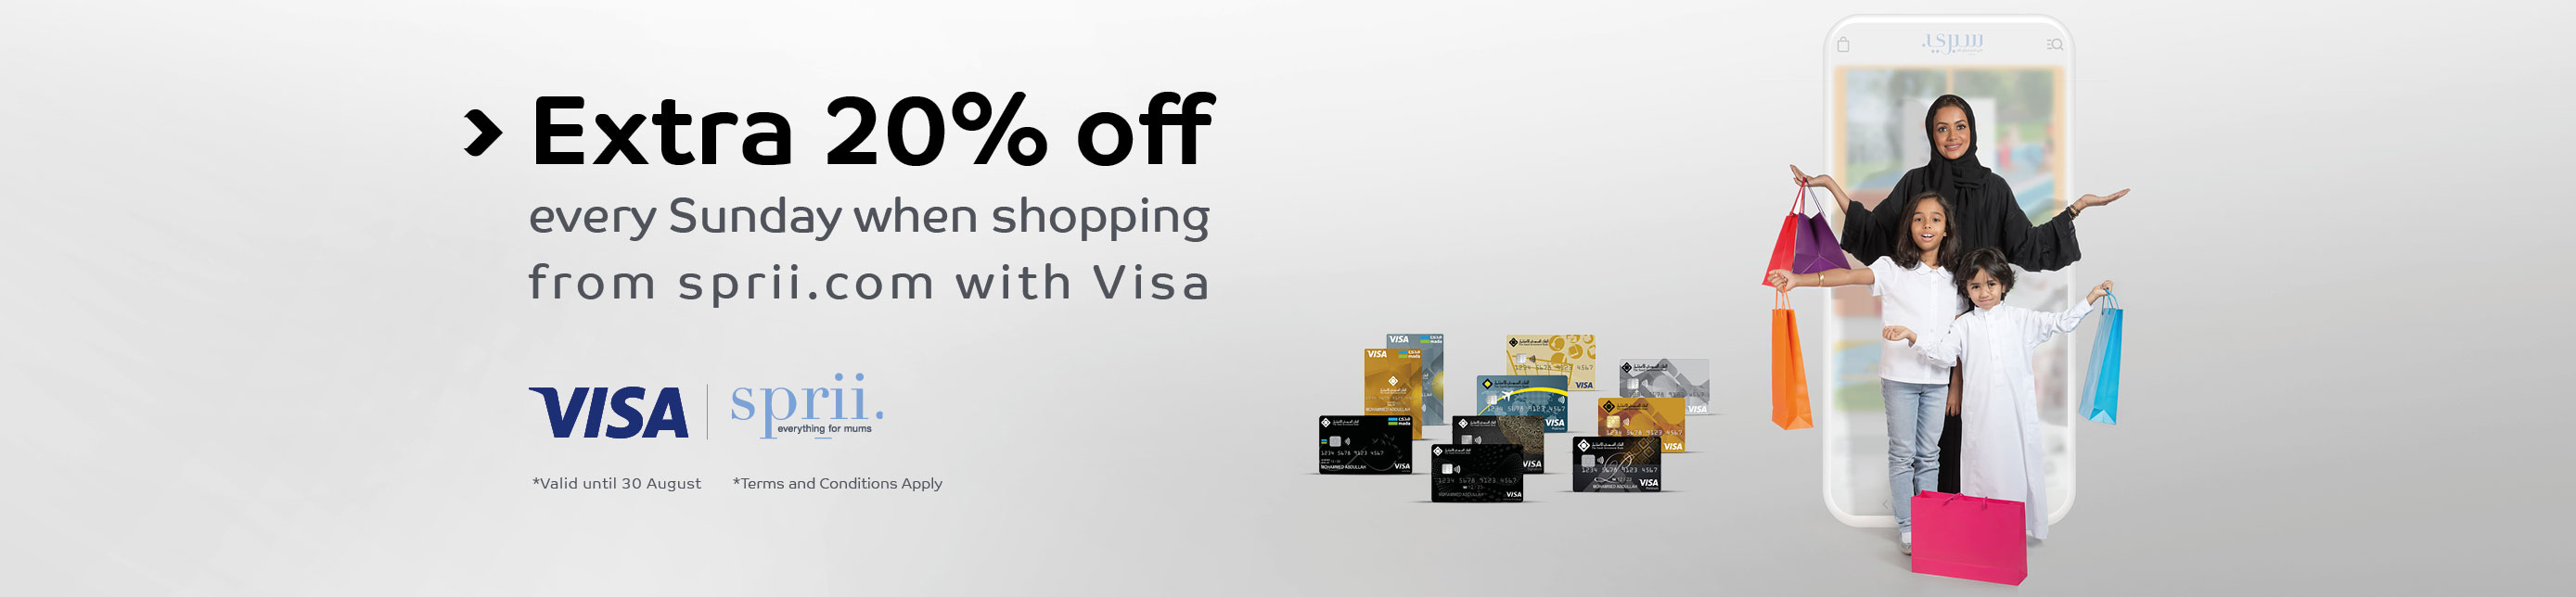 Visa and Sprii Offer